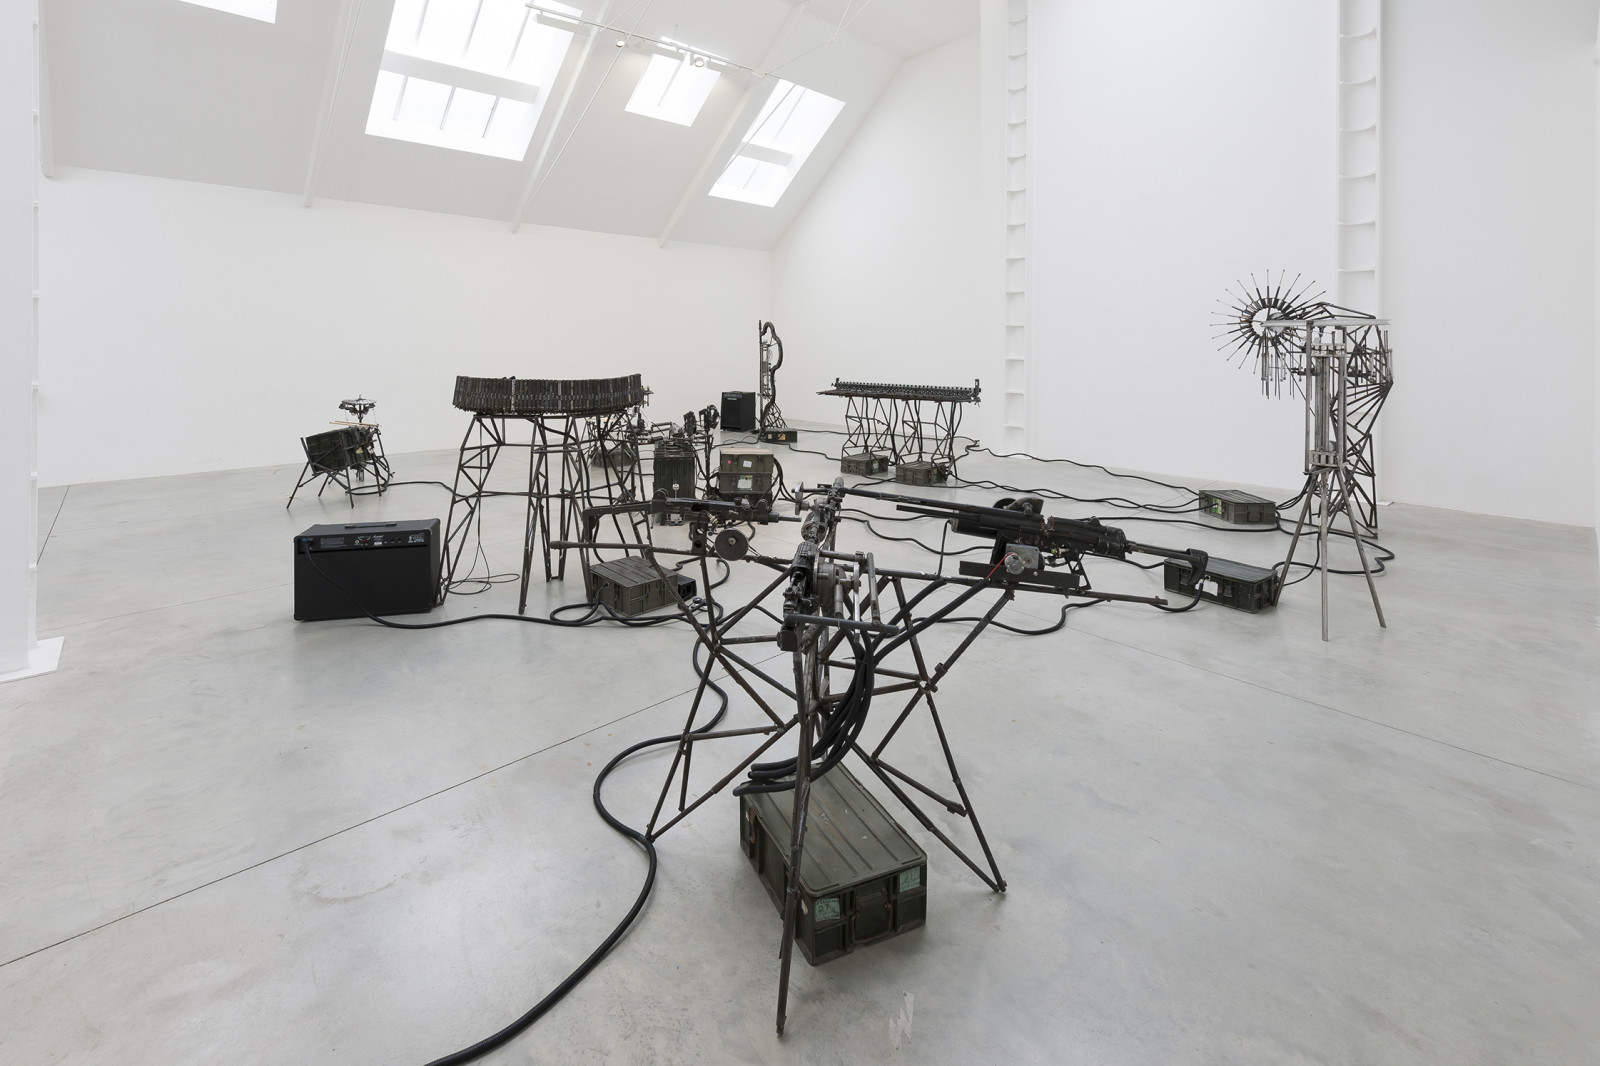 Disarm Mechanized, 2013. Installation view at Lisson Gallery. Courtesy of Lisson Gallery, 2013. Photo: Dave Morgan.